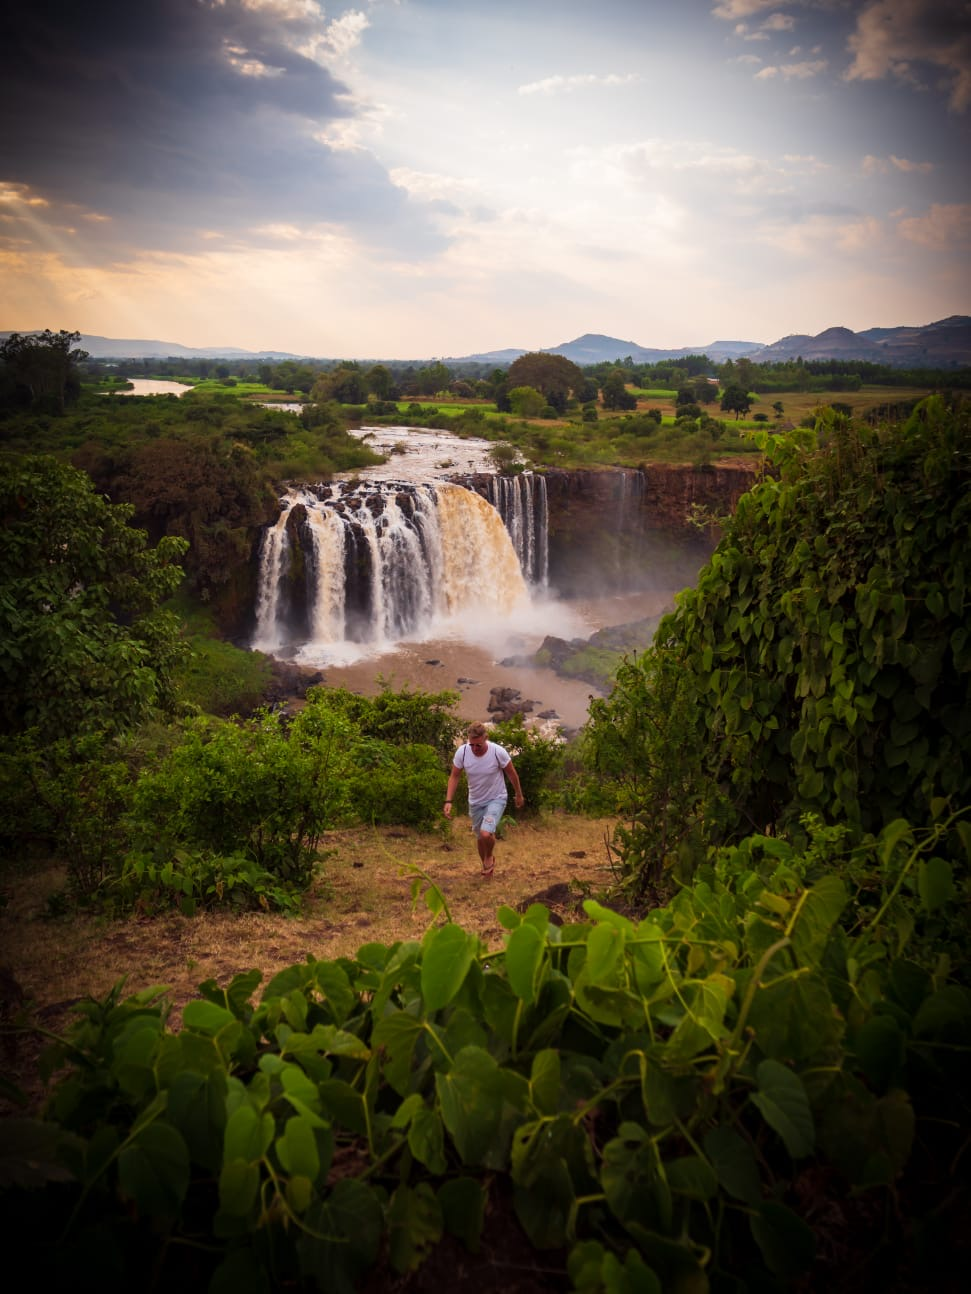 Things to see in Ethiopia